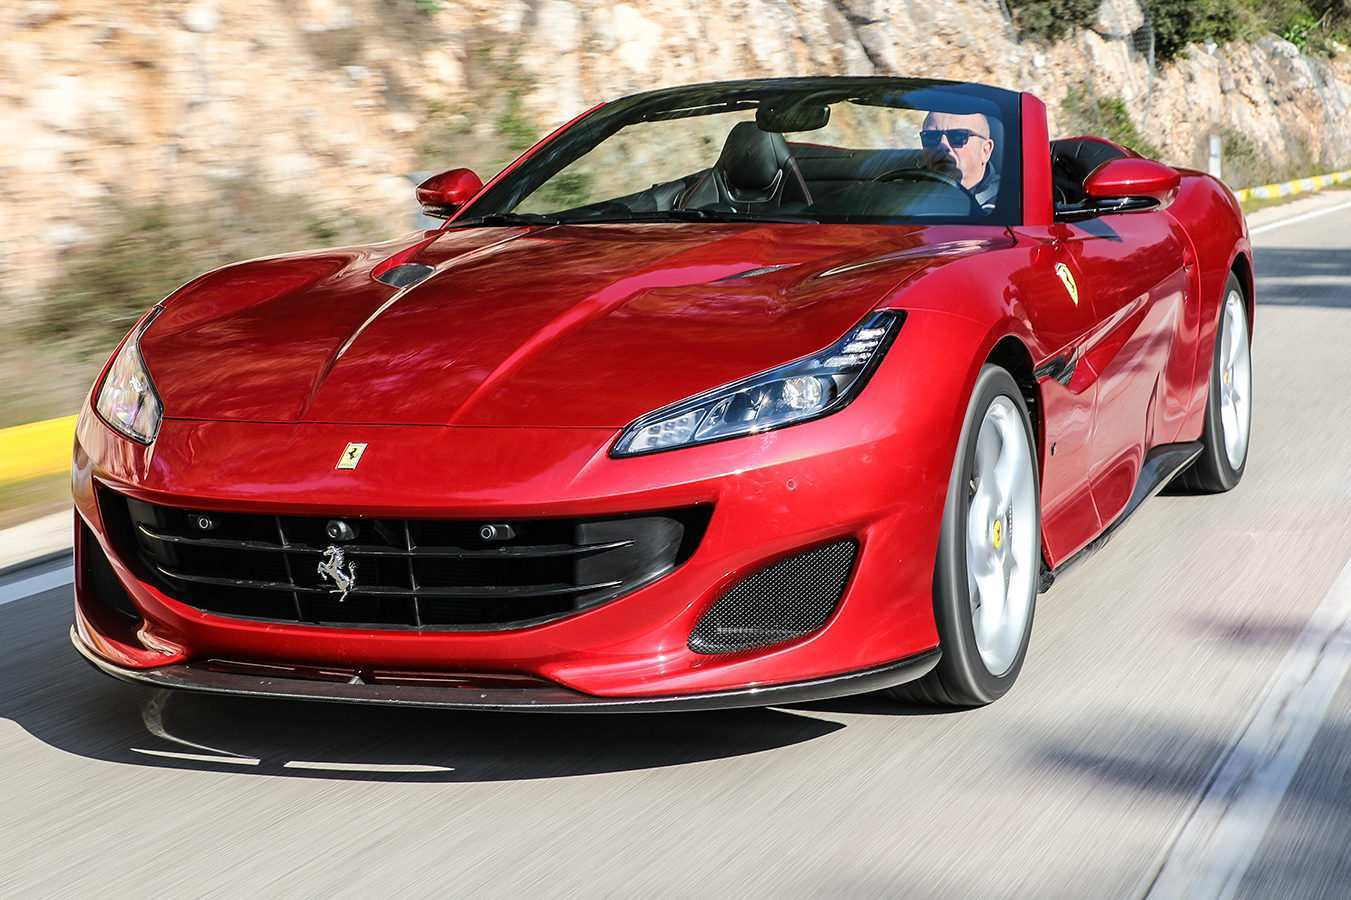 70 Great 2019 Ferrari Key Release Date Redesign by 2019 Ferrari Key Release Date